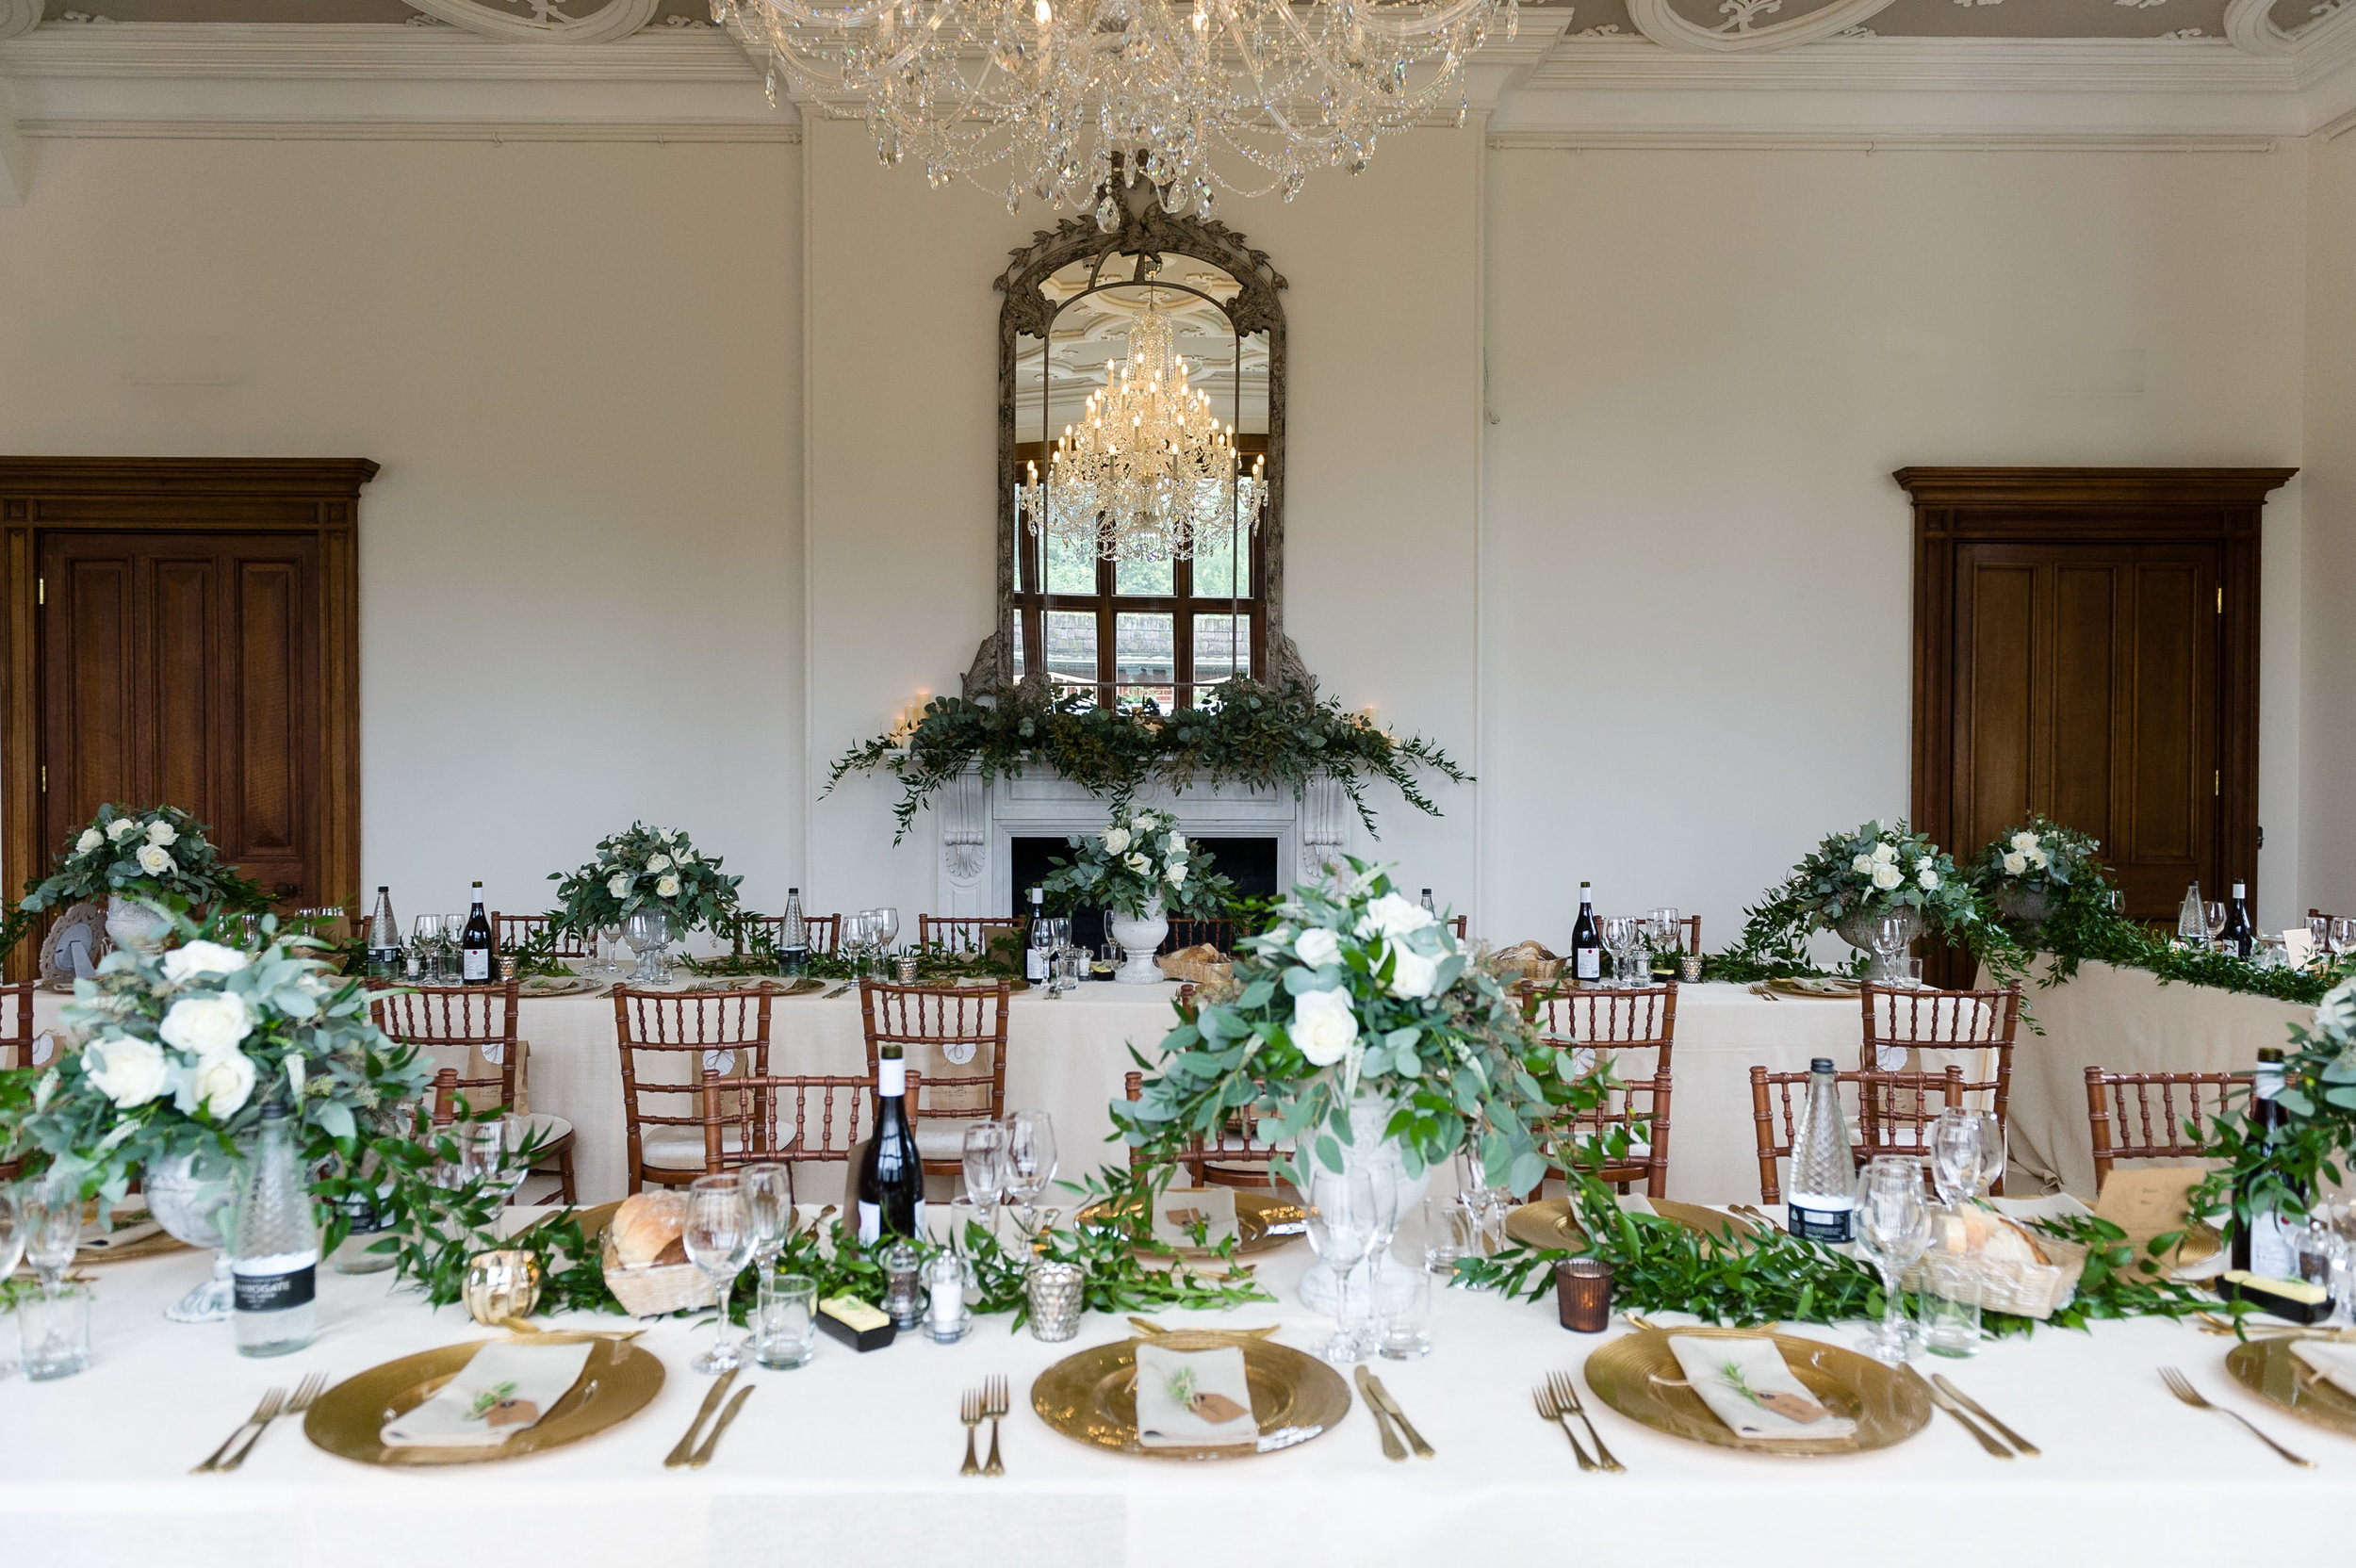 Guest table flowers by Tineke